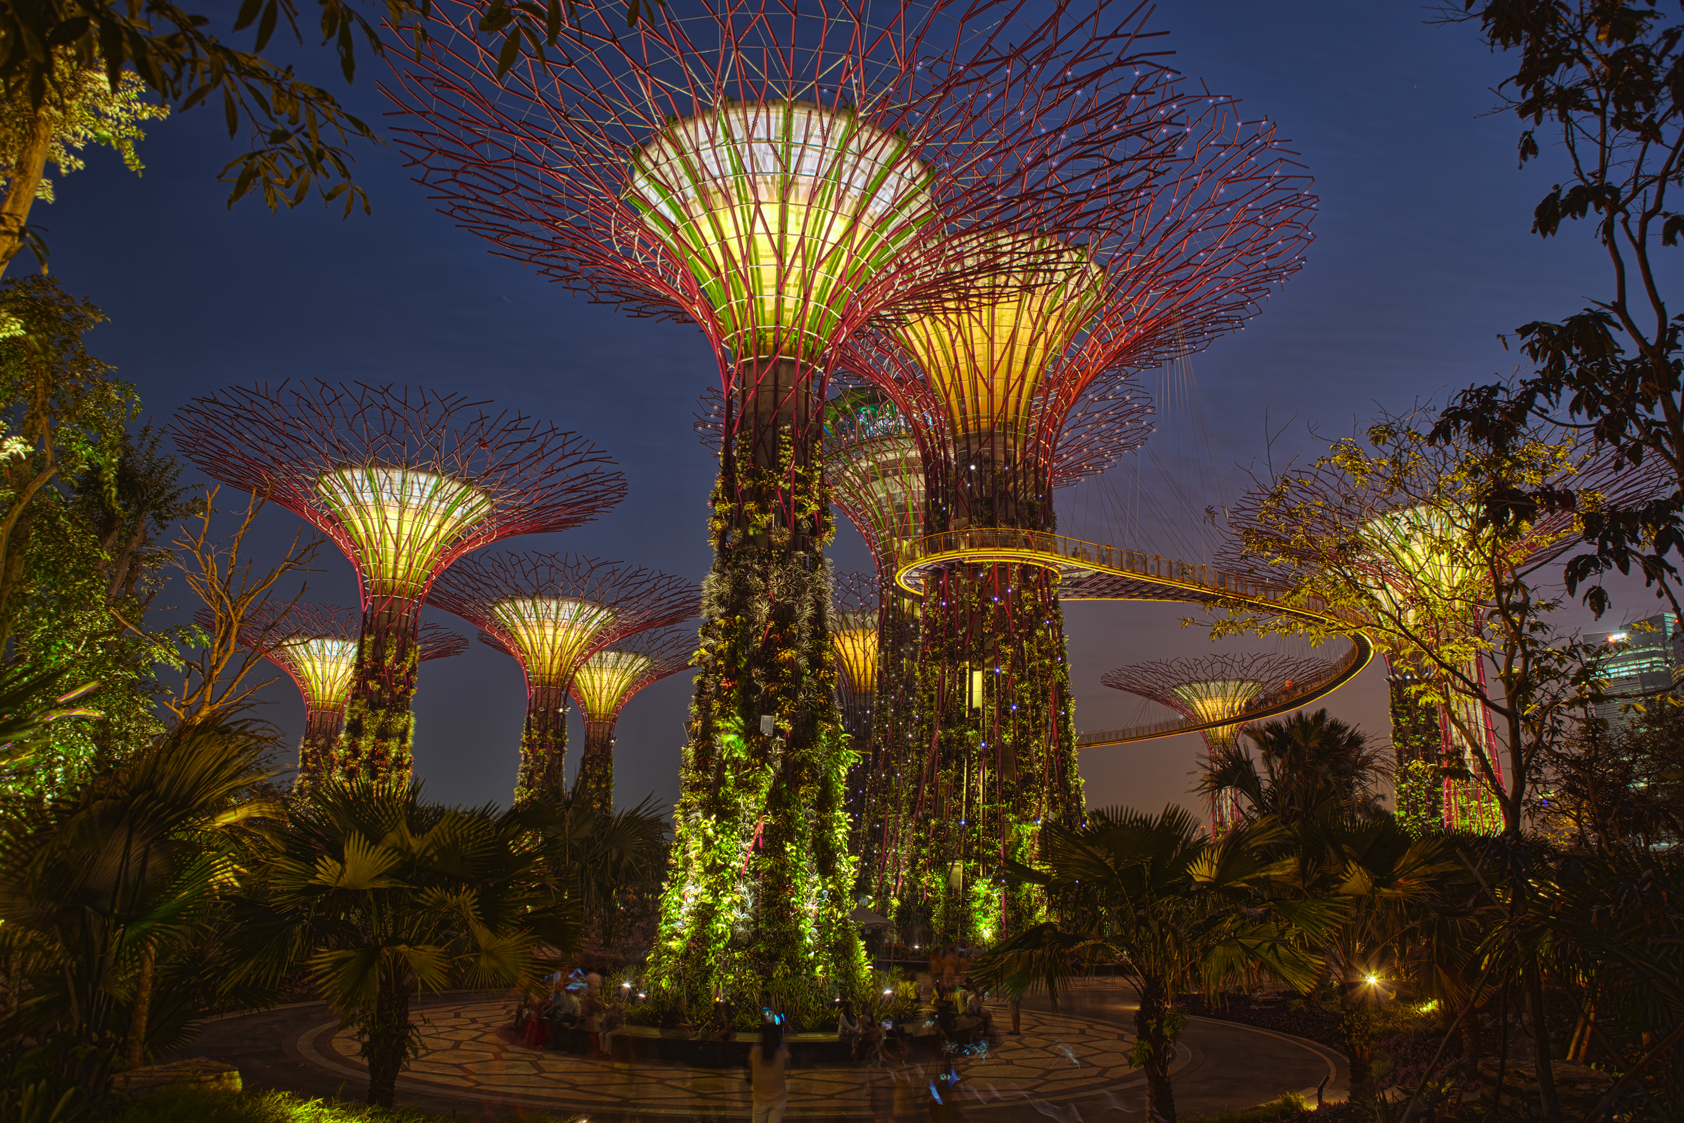 Gardens By The Bay, Singapore (or Star Wars) | HDR creme